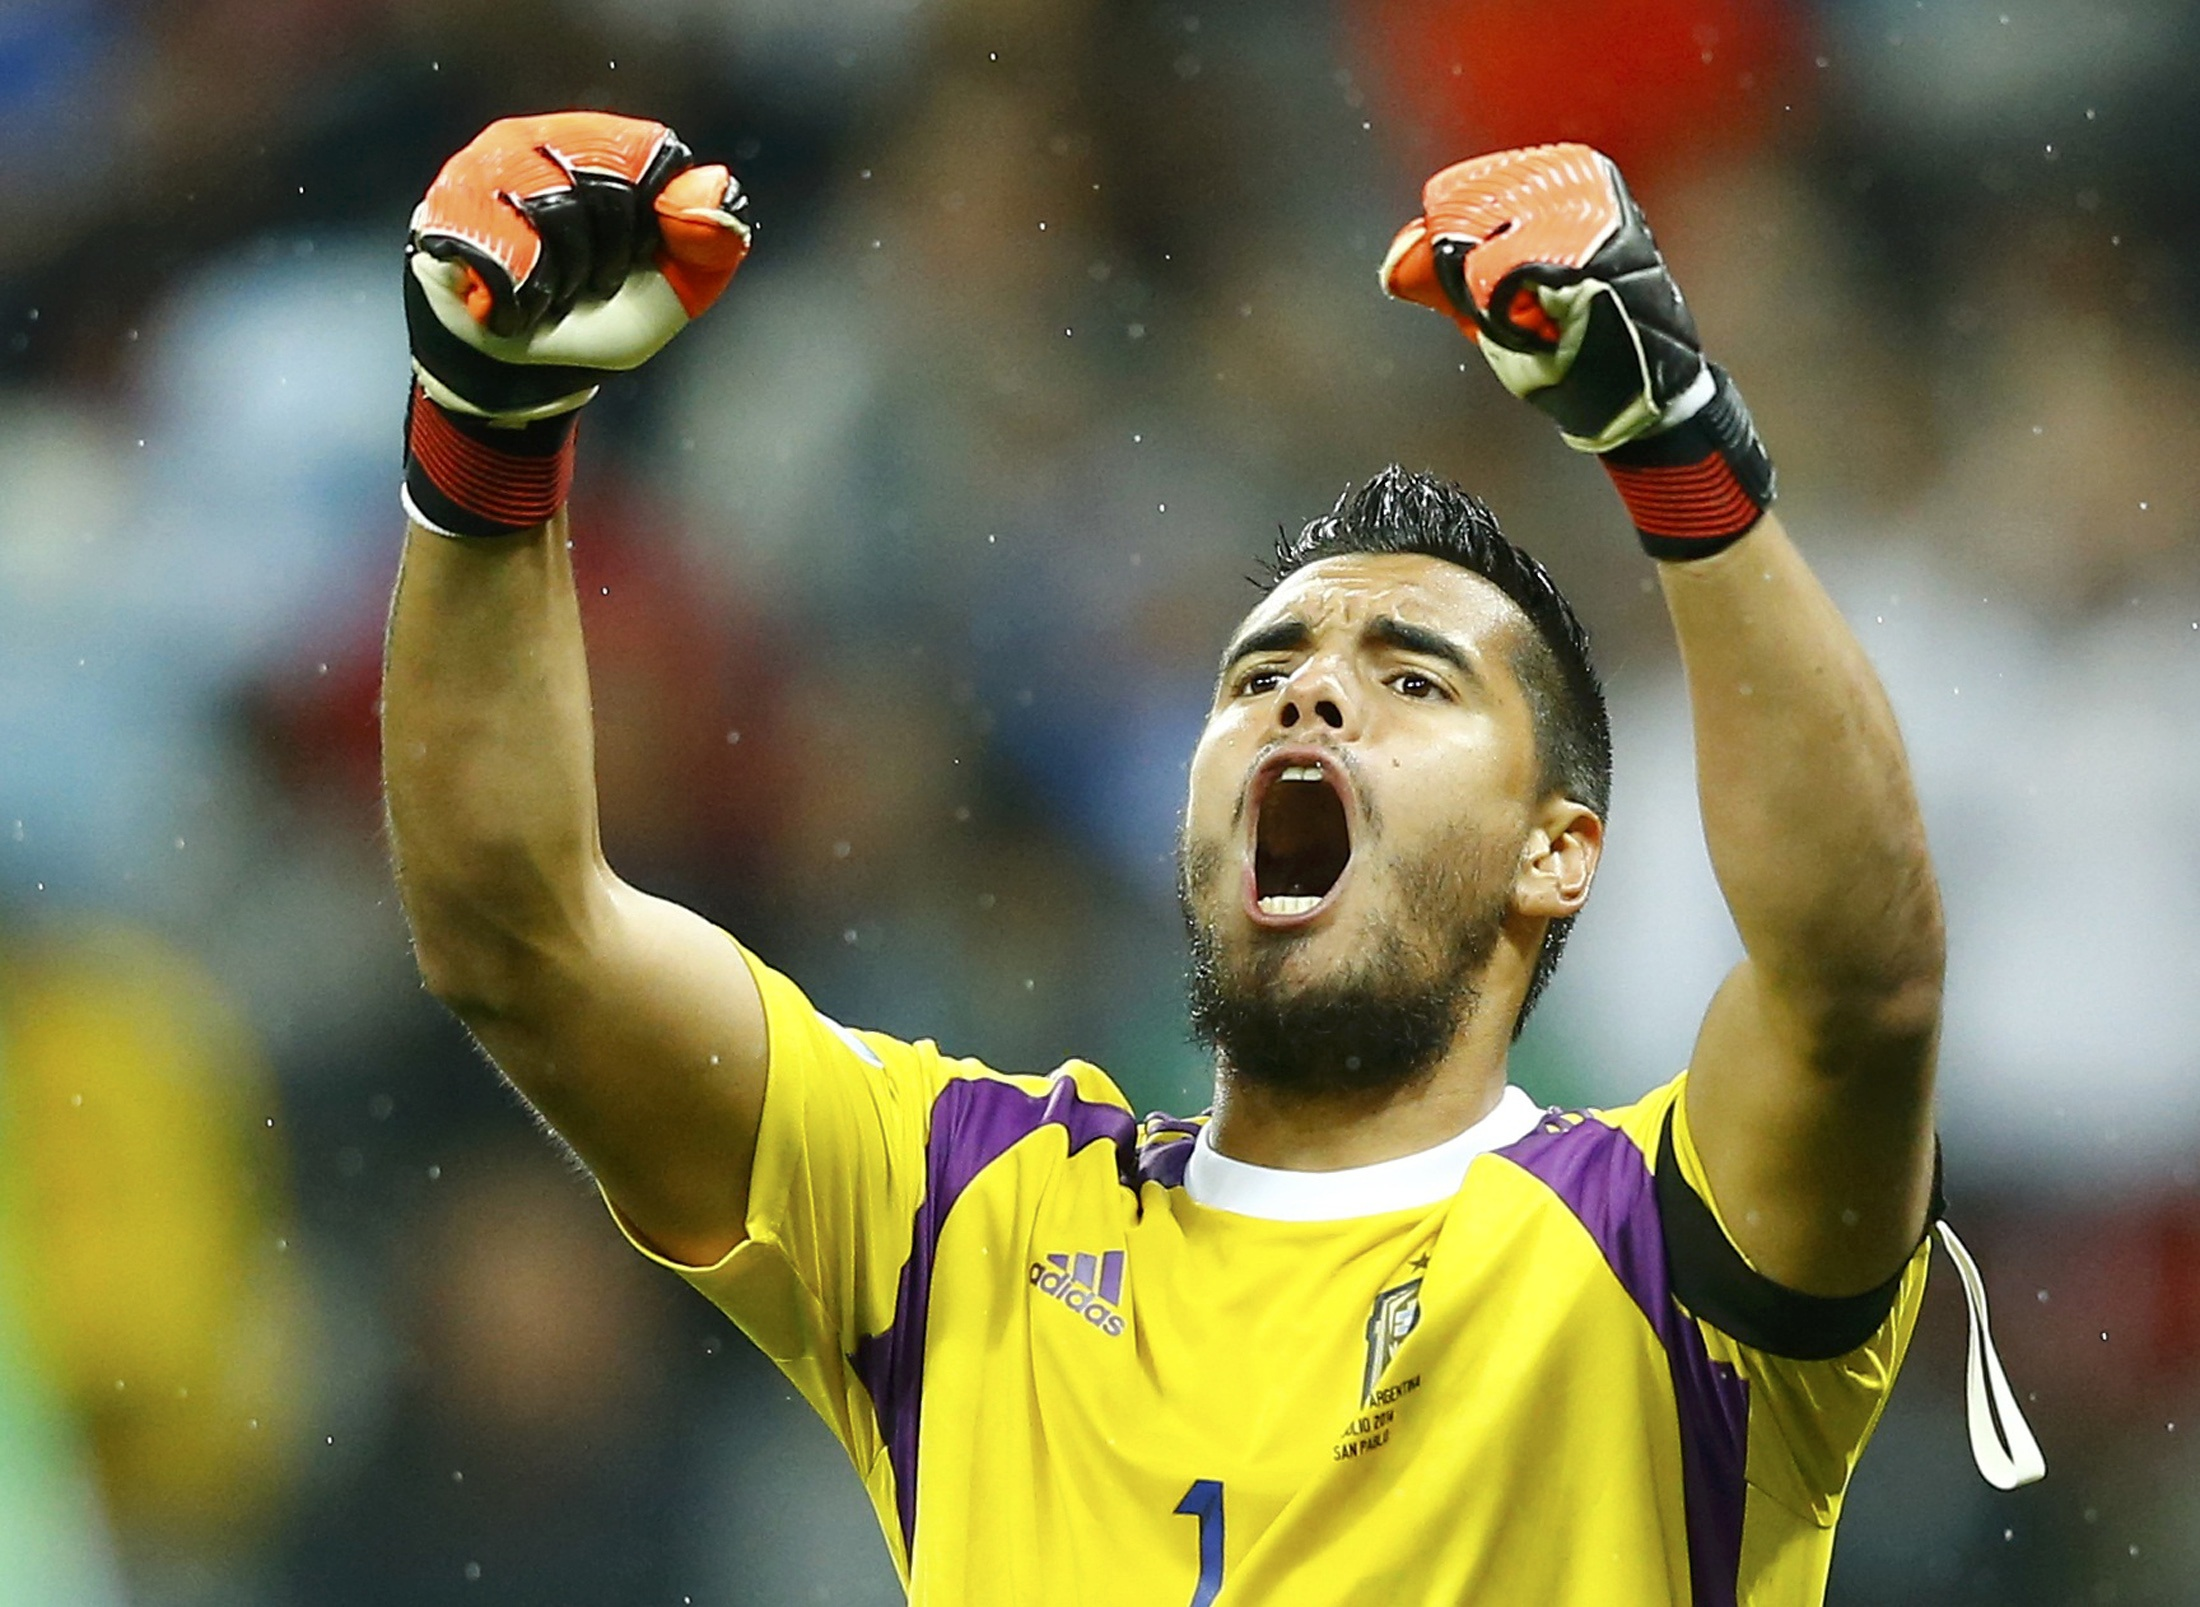 Argentina's goalkeeper Sergio Romero celebrates after saving the ball for the second time during a penalty shoot-out at their 2014 World Cup semi-finals against the Netherlands at the Corinthians arena in Sao Paulo July 9, 2014.   Photo: Reuters